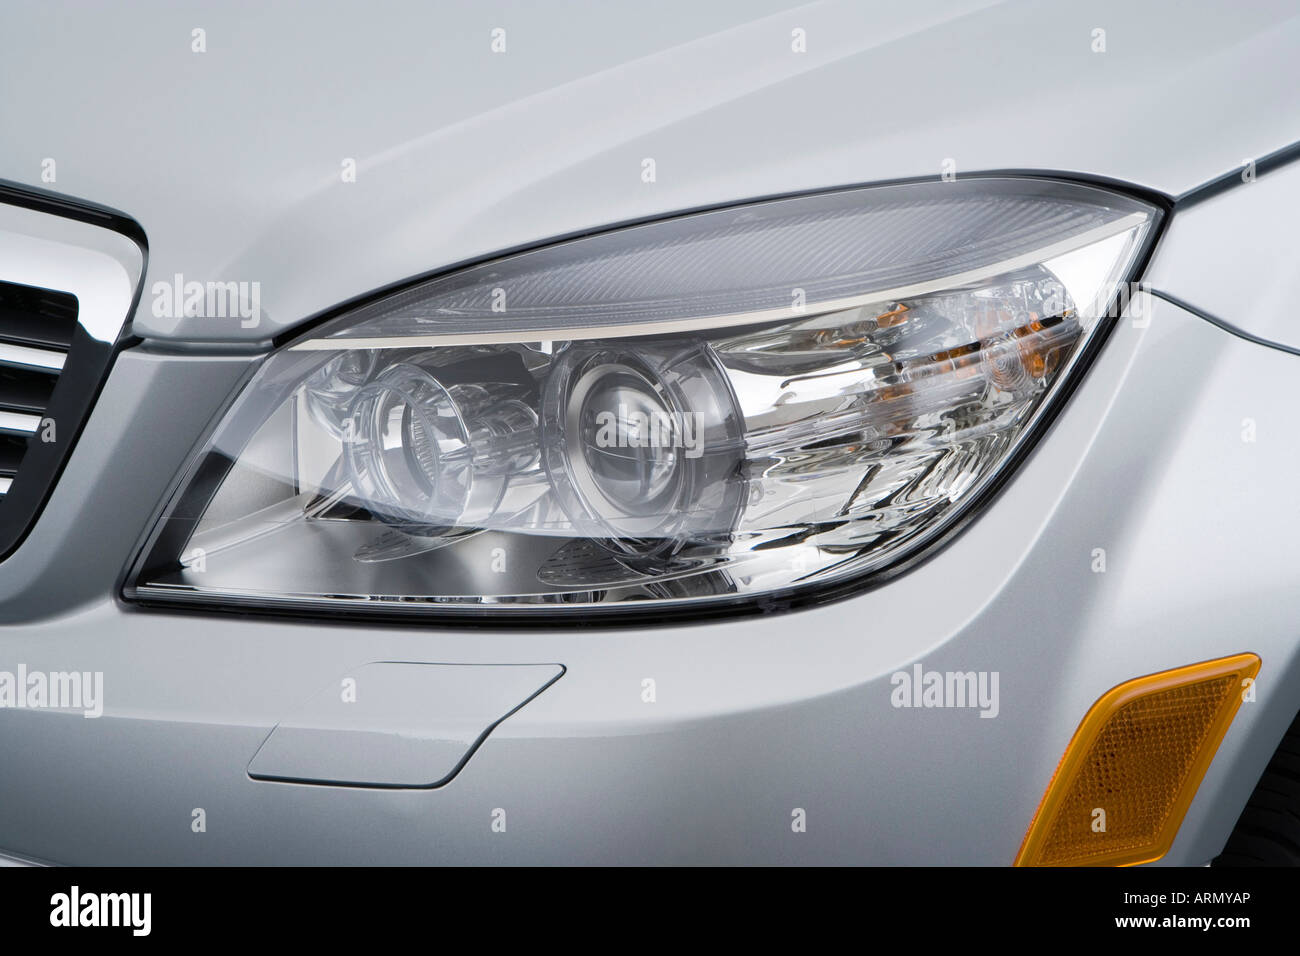 hight resolution of 2008 mercedes benz c class c300 in silver headlight